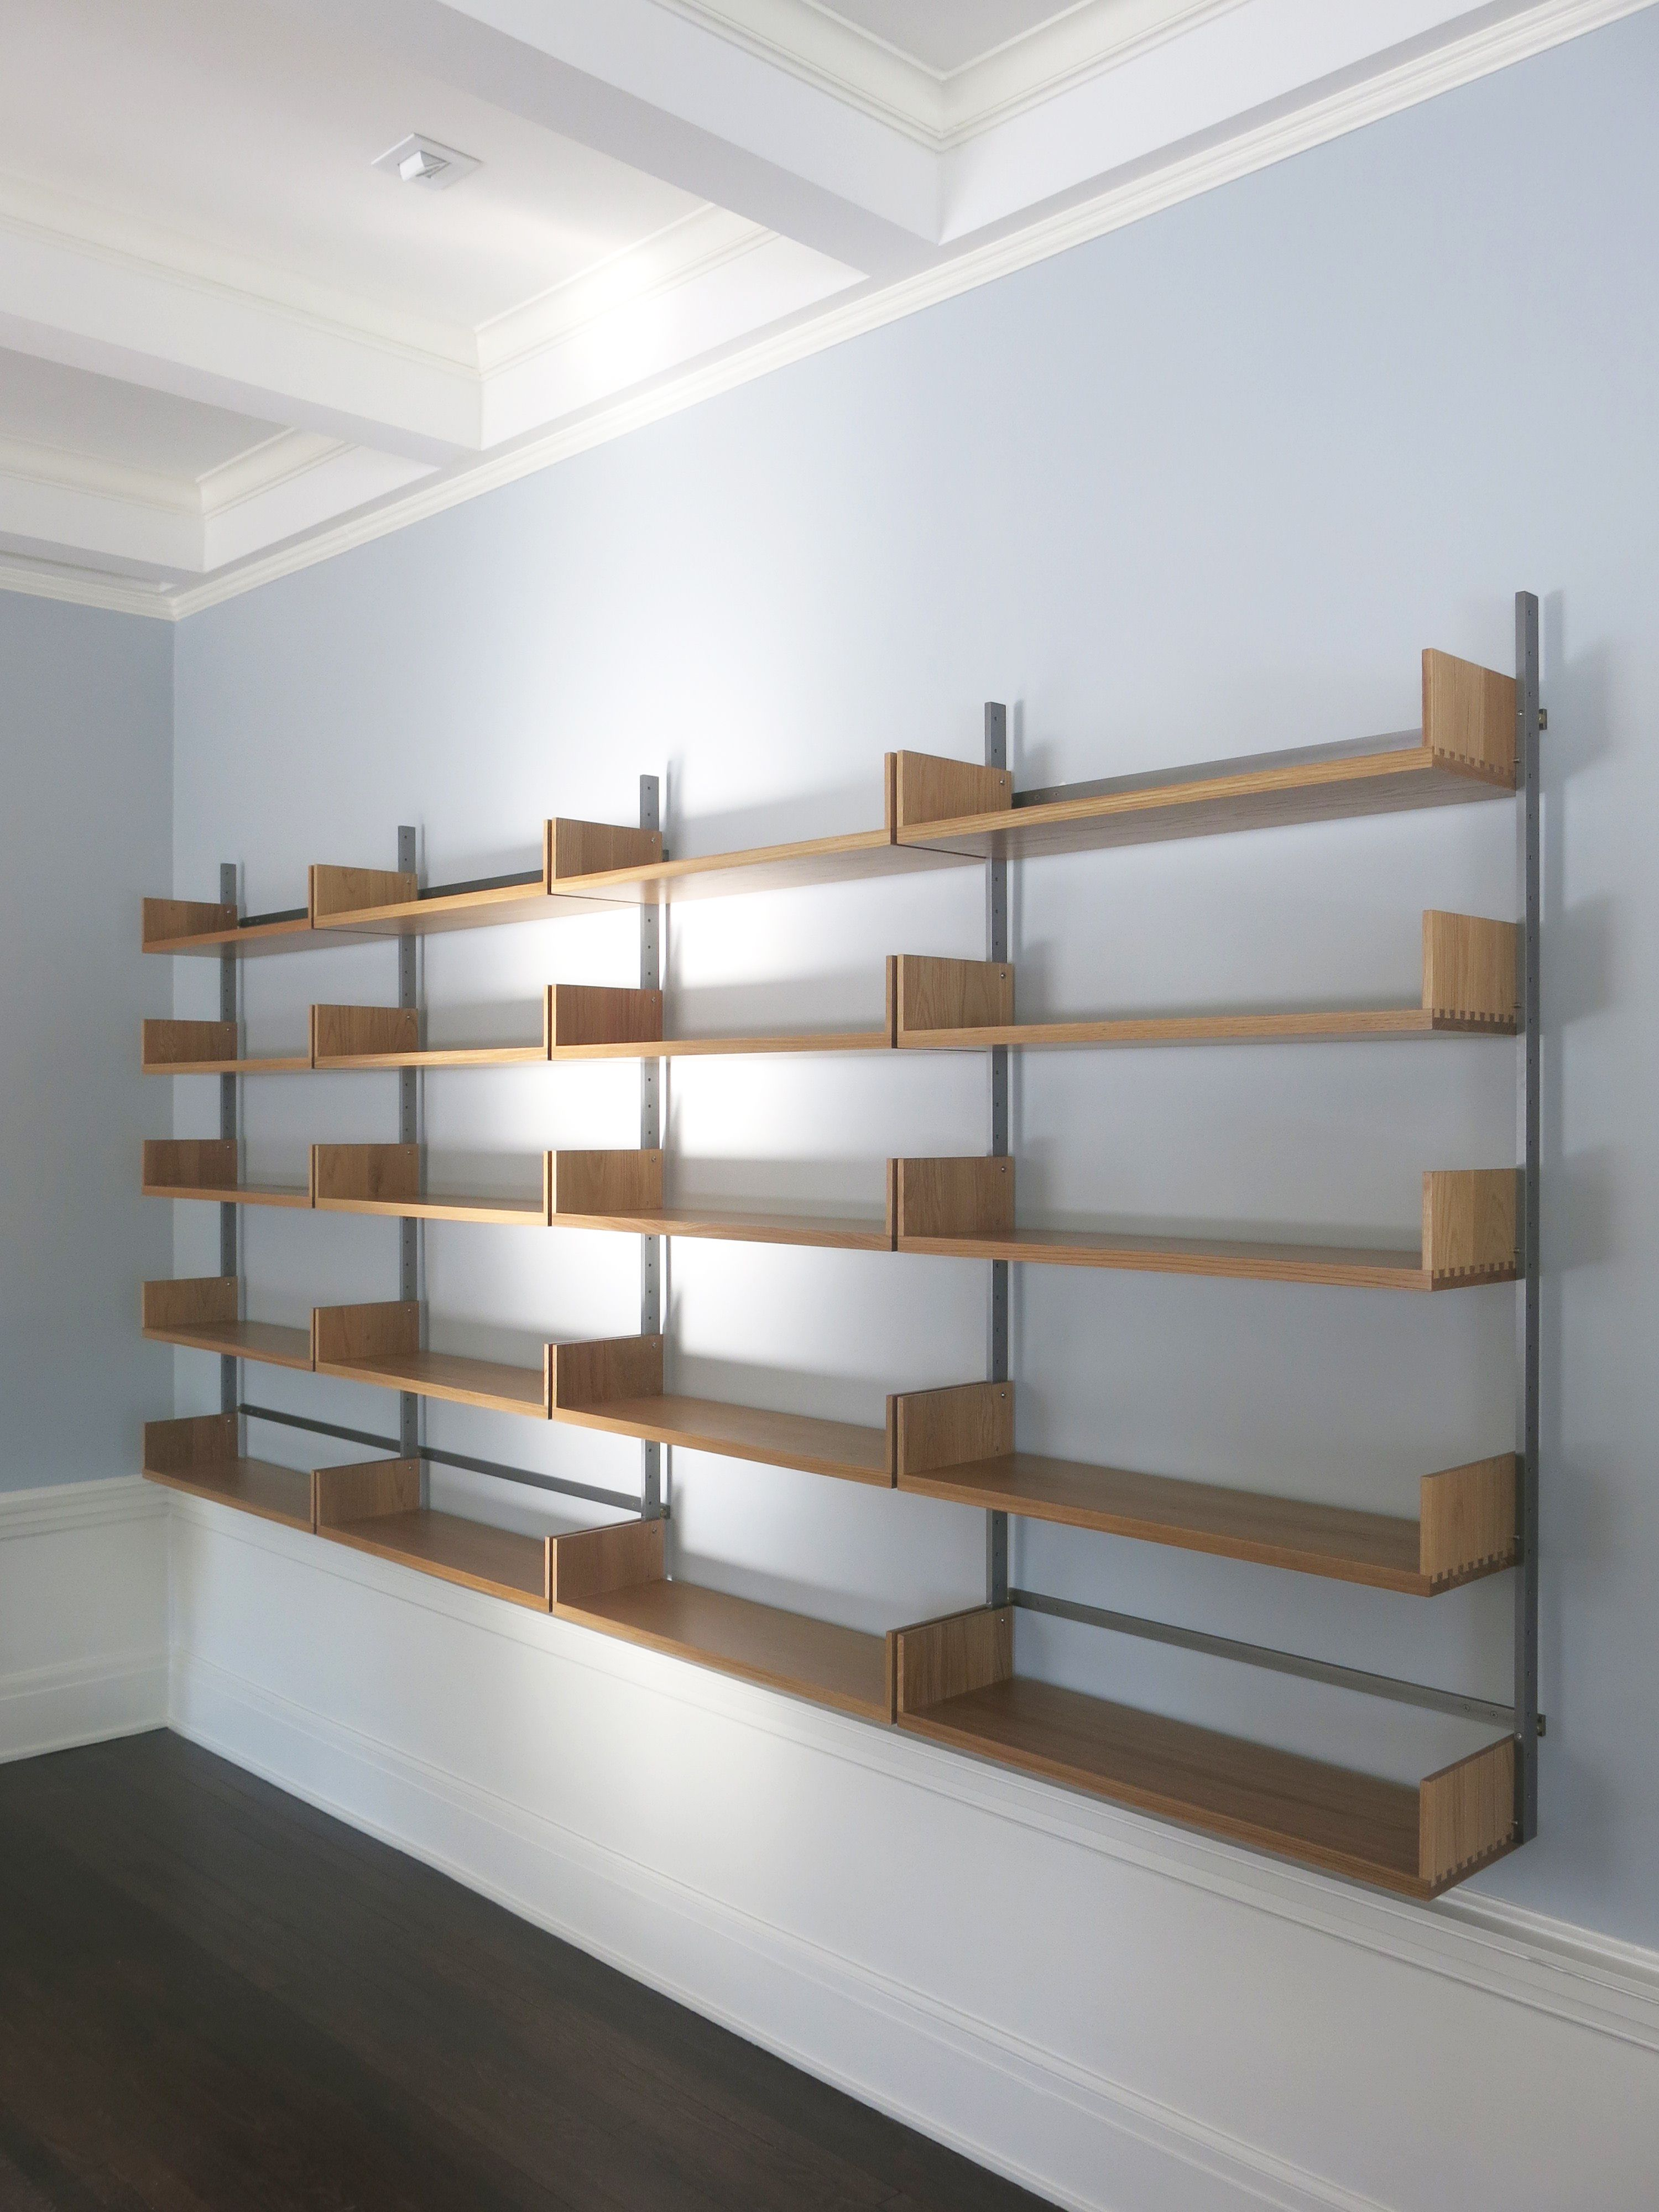 As4 Modular Shelving System In White Oak And Cold Rolled Steel Wall Mounted Furniture Store Design Interior Modular Shelving Home Office Design